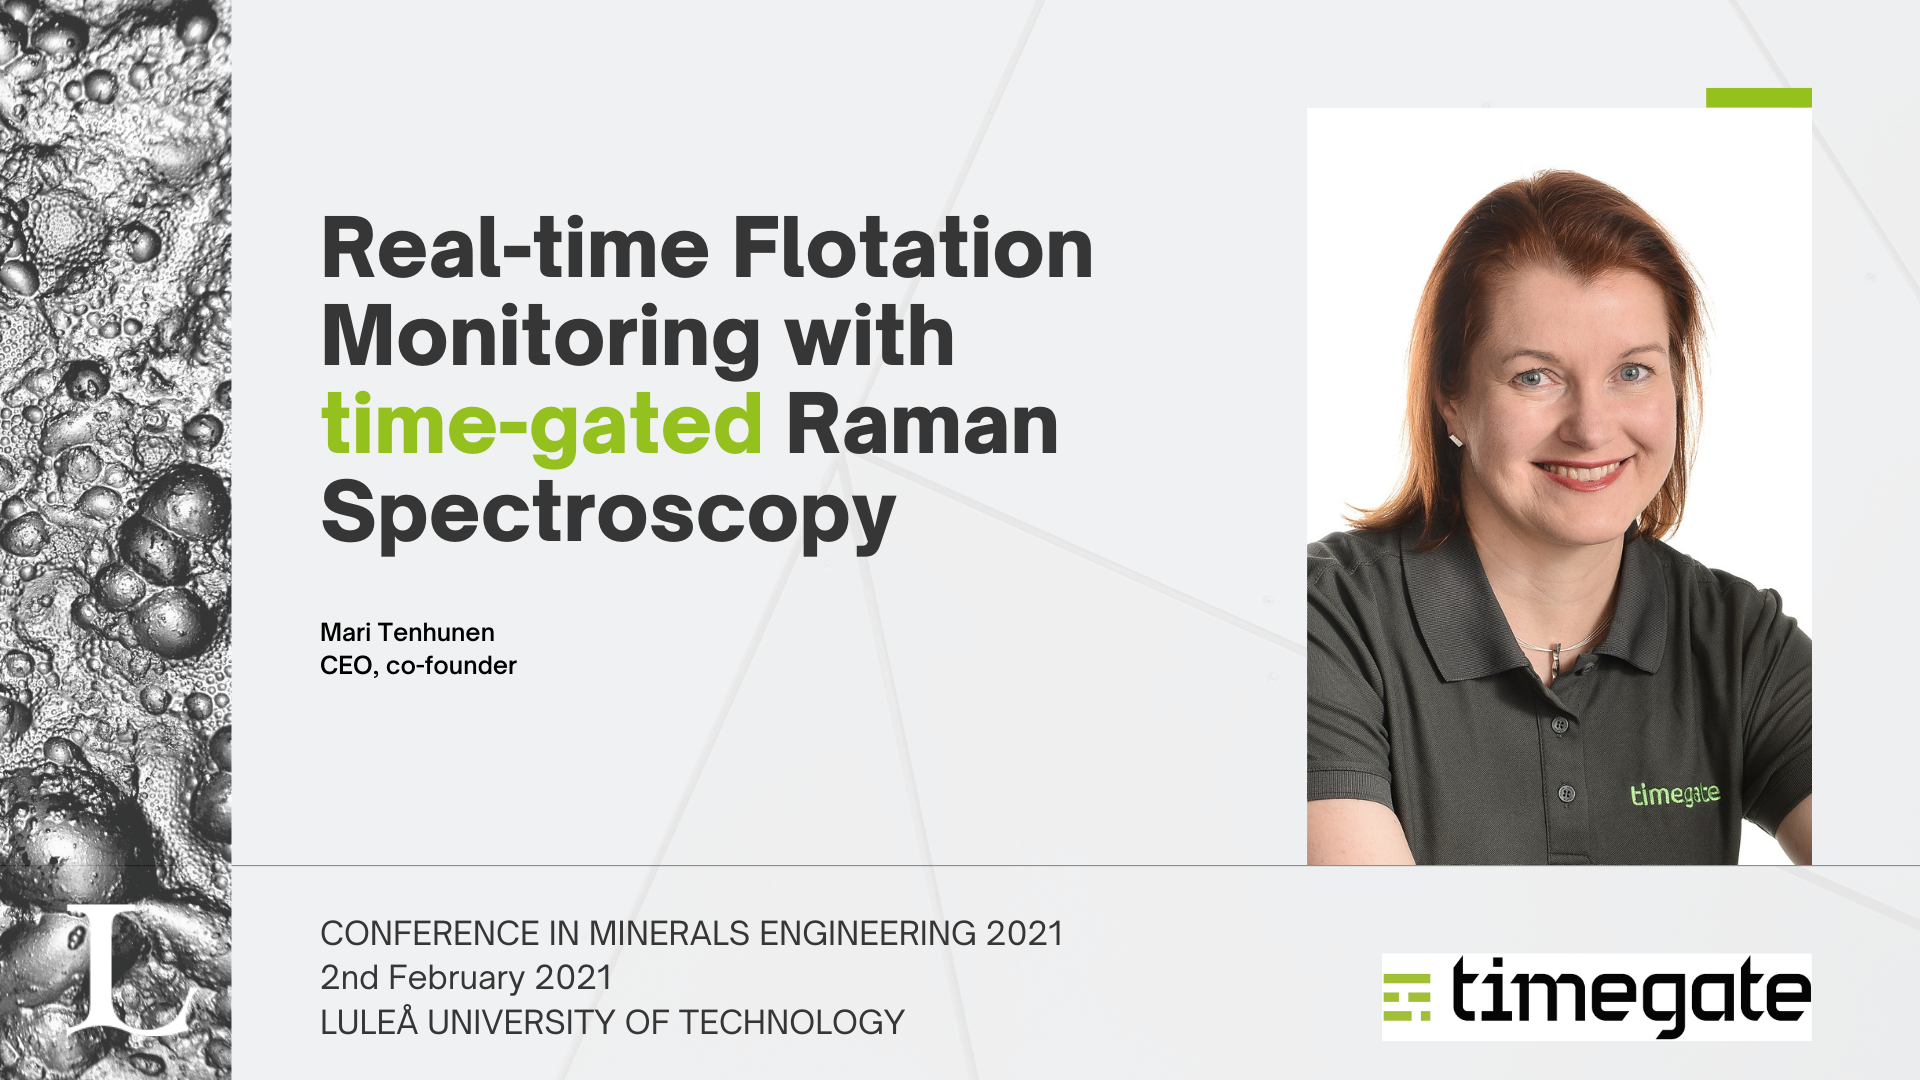 Real-time Flotation Monitoring with time-gated Raman Spectroscopy